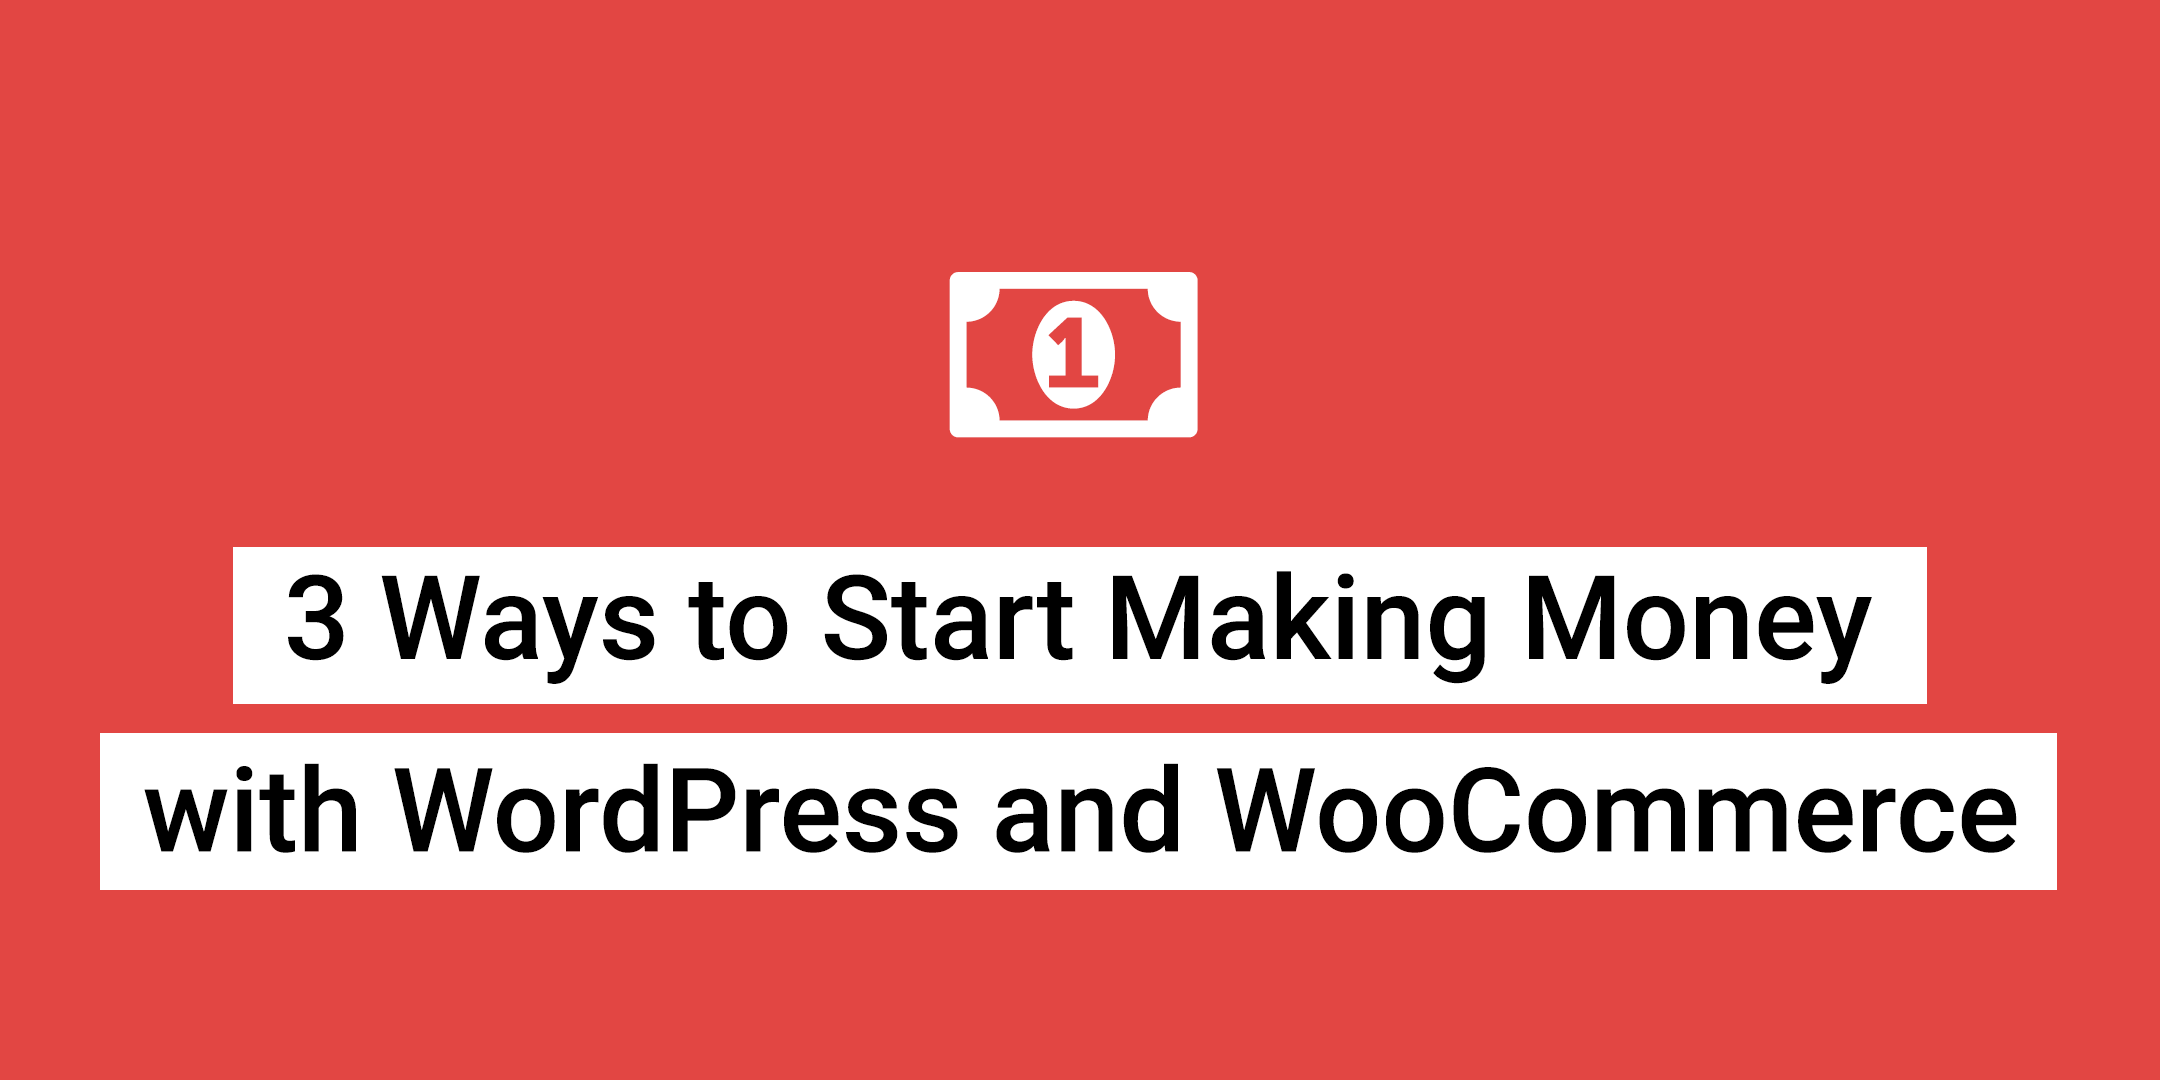 Make Money with WordPress and WooCommerce